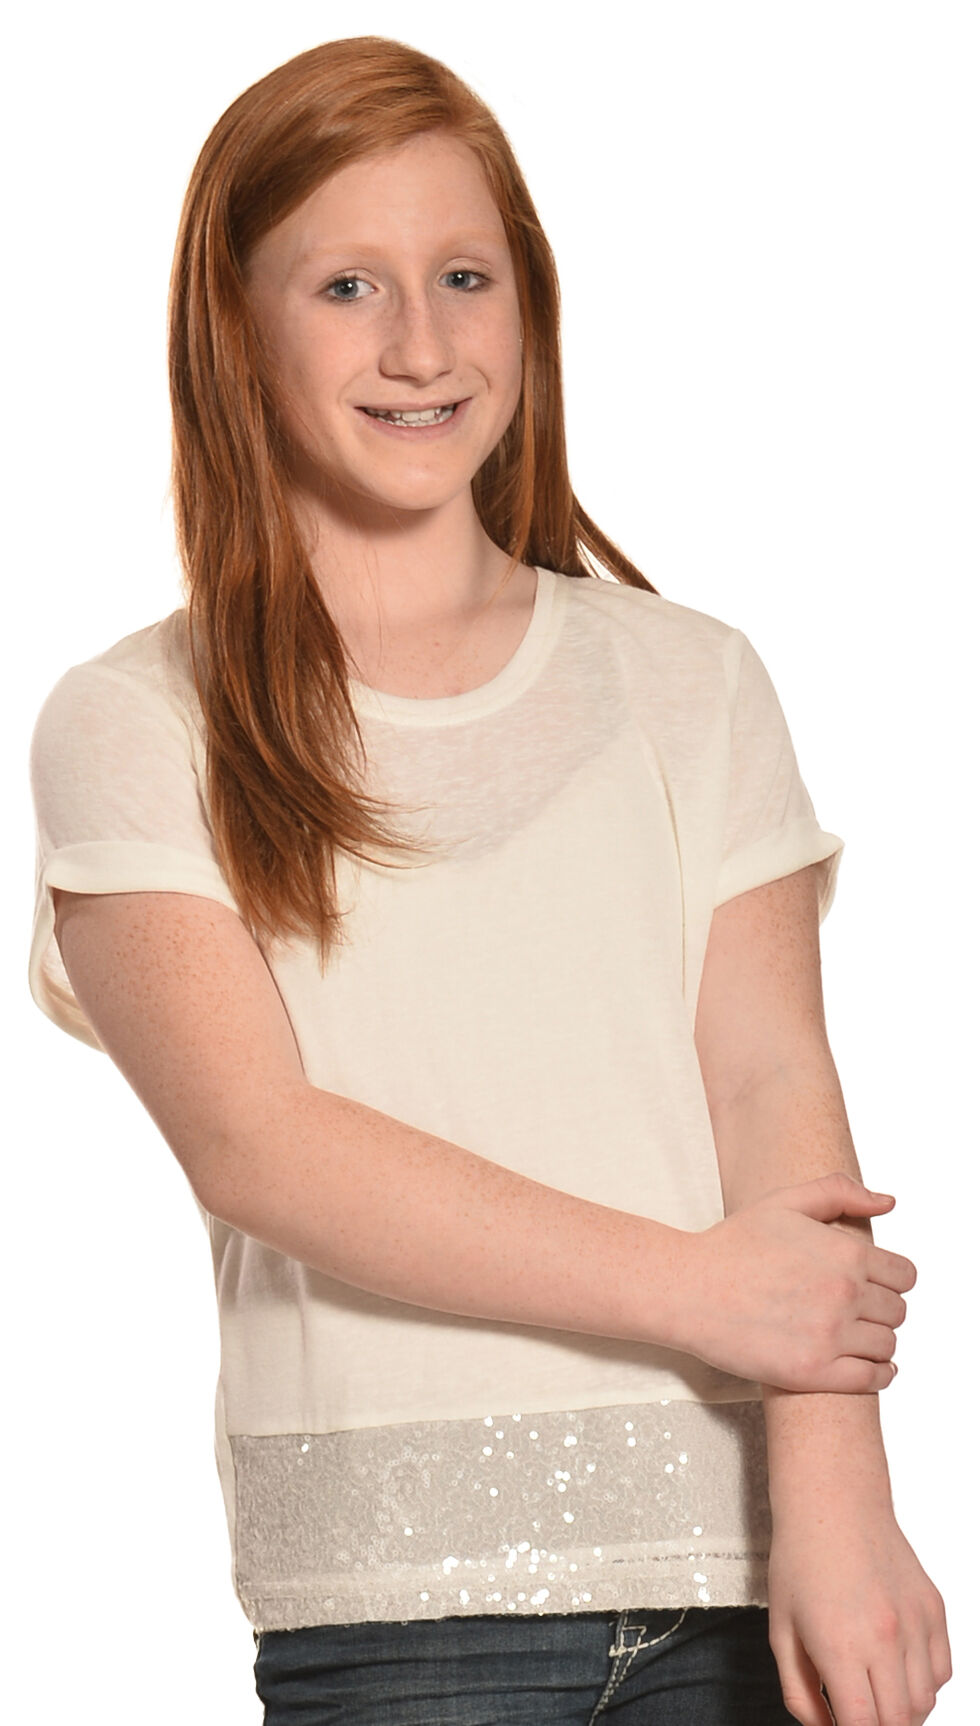 Miss Me Girls' Double Trouble Top, White, hi-res